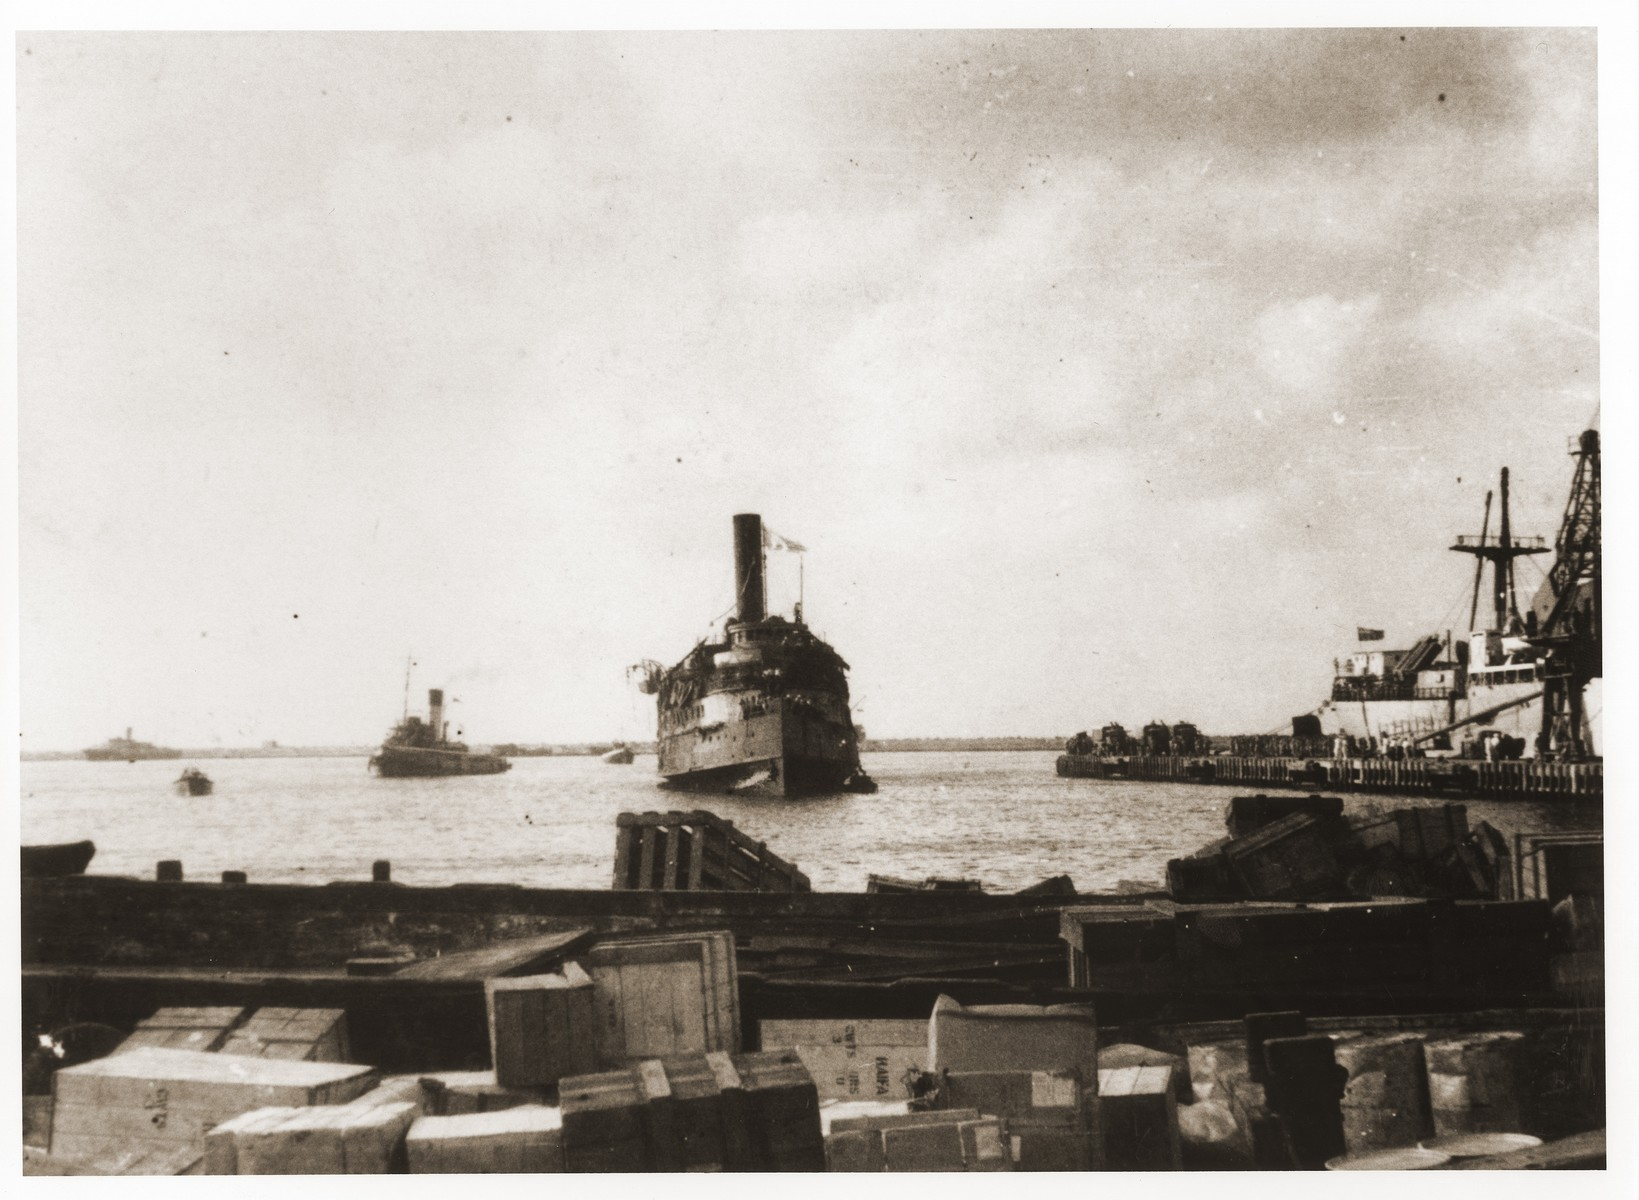 The Exodus 1947 limps into the port of Haifa after being battered by British destroyers during its interception at sea.